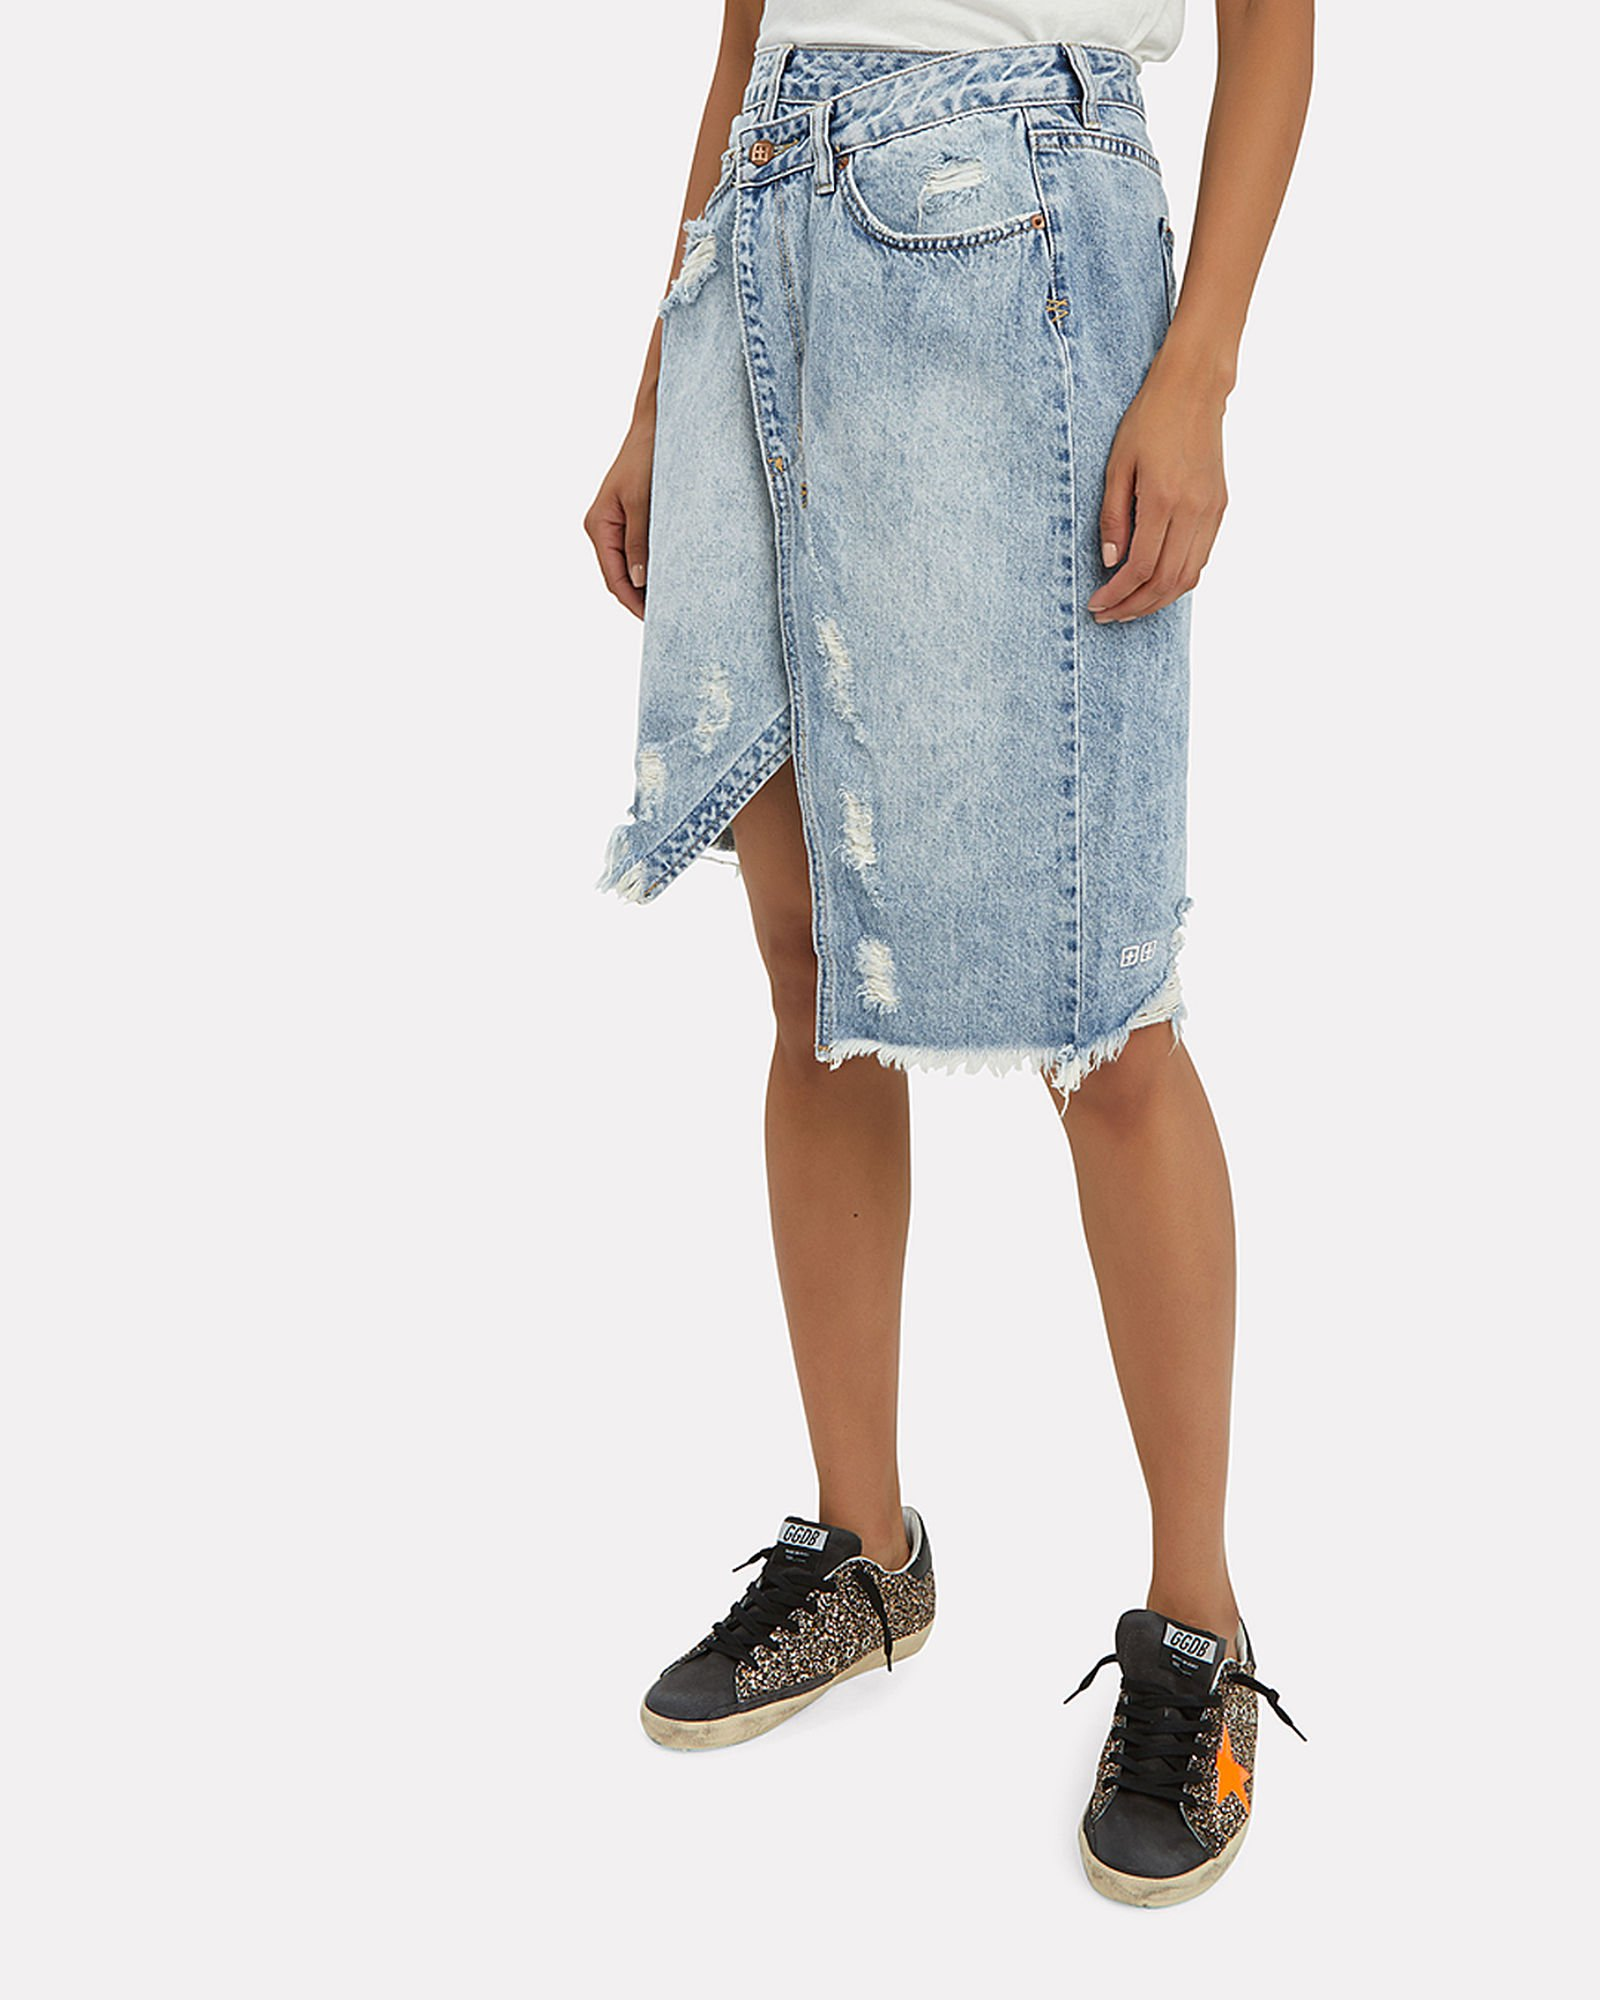 wrap skirt, wrap denim, jeans, denim skirt, white denim, ksubi, midi skirt